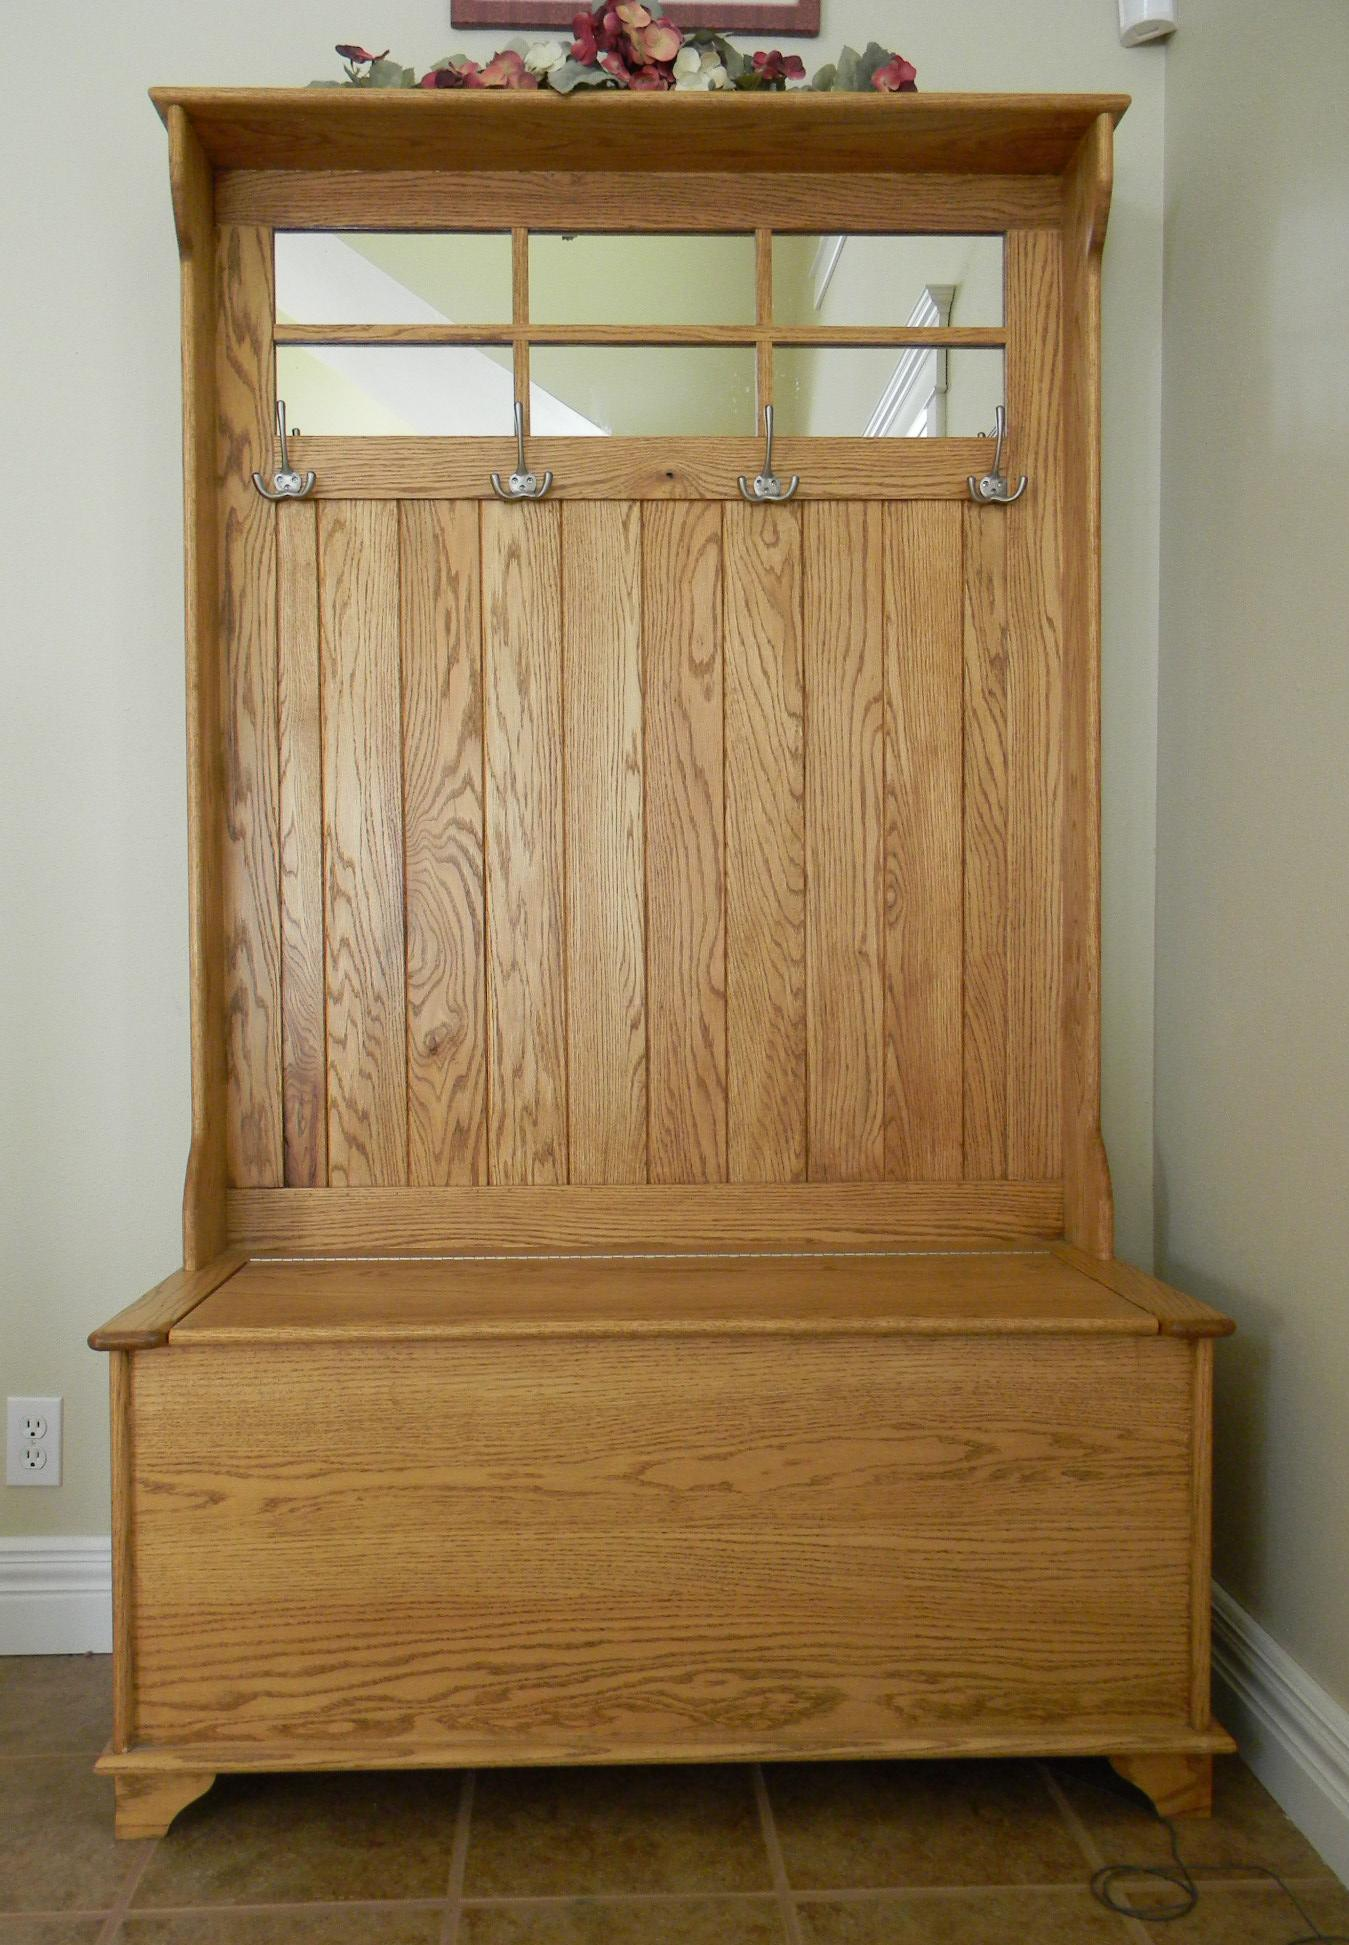 Hallway Bench Coat Rack | Foyer Coat Rack Bench | Entryway Storage Bench with Coat Rack